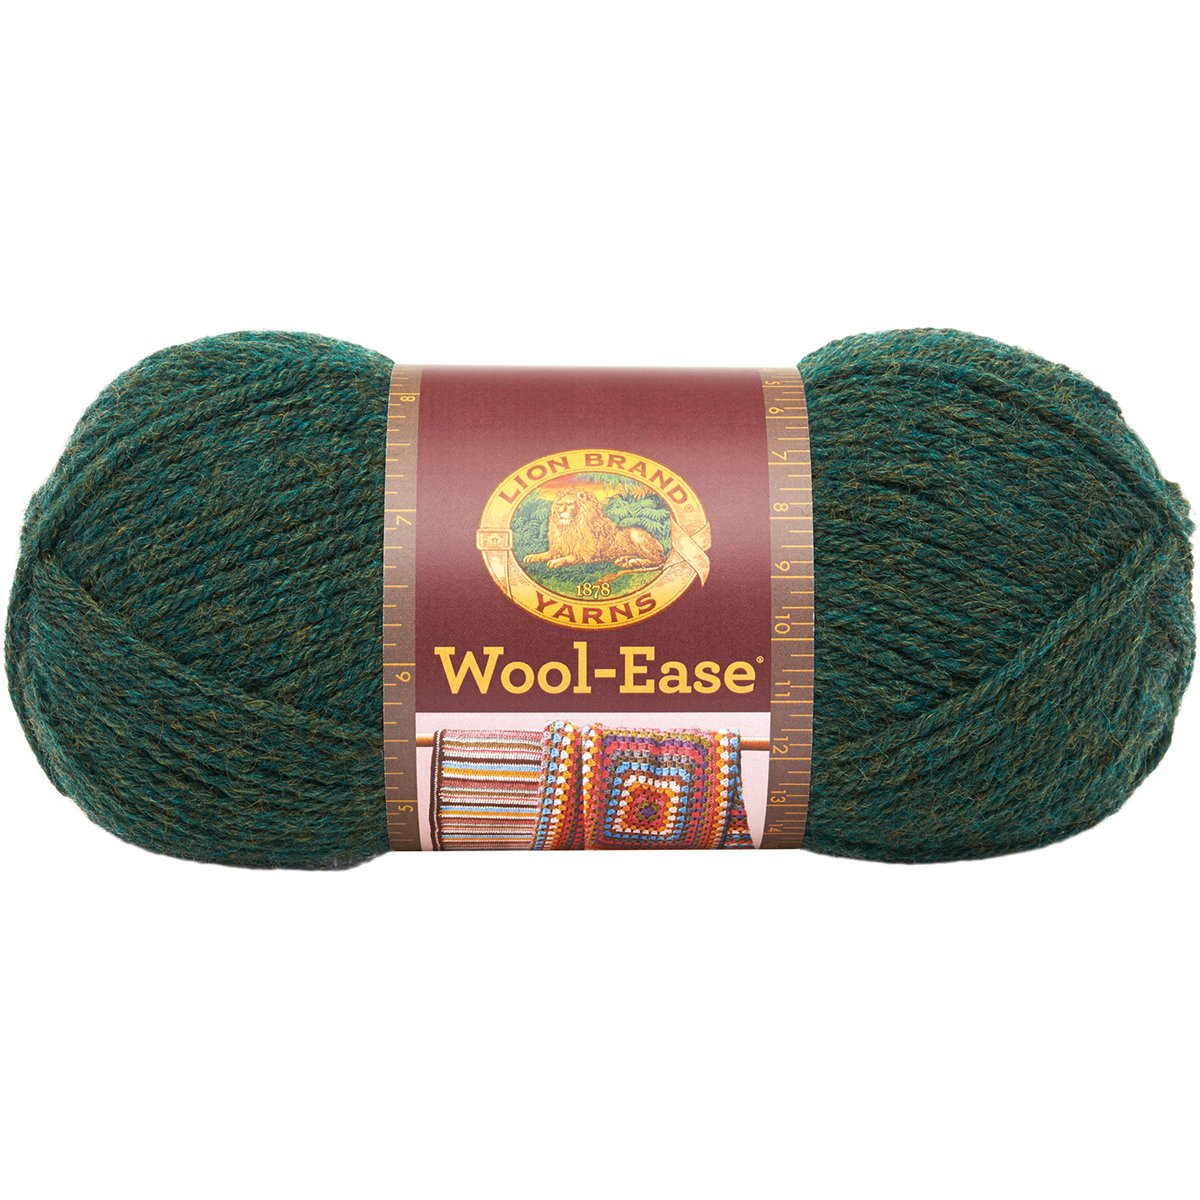 Lion Brand Wool-Ease Yarn (152) Oxford Grey, Oxford Grey (620-152) Lion Brand Yarn